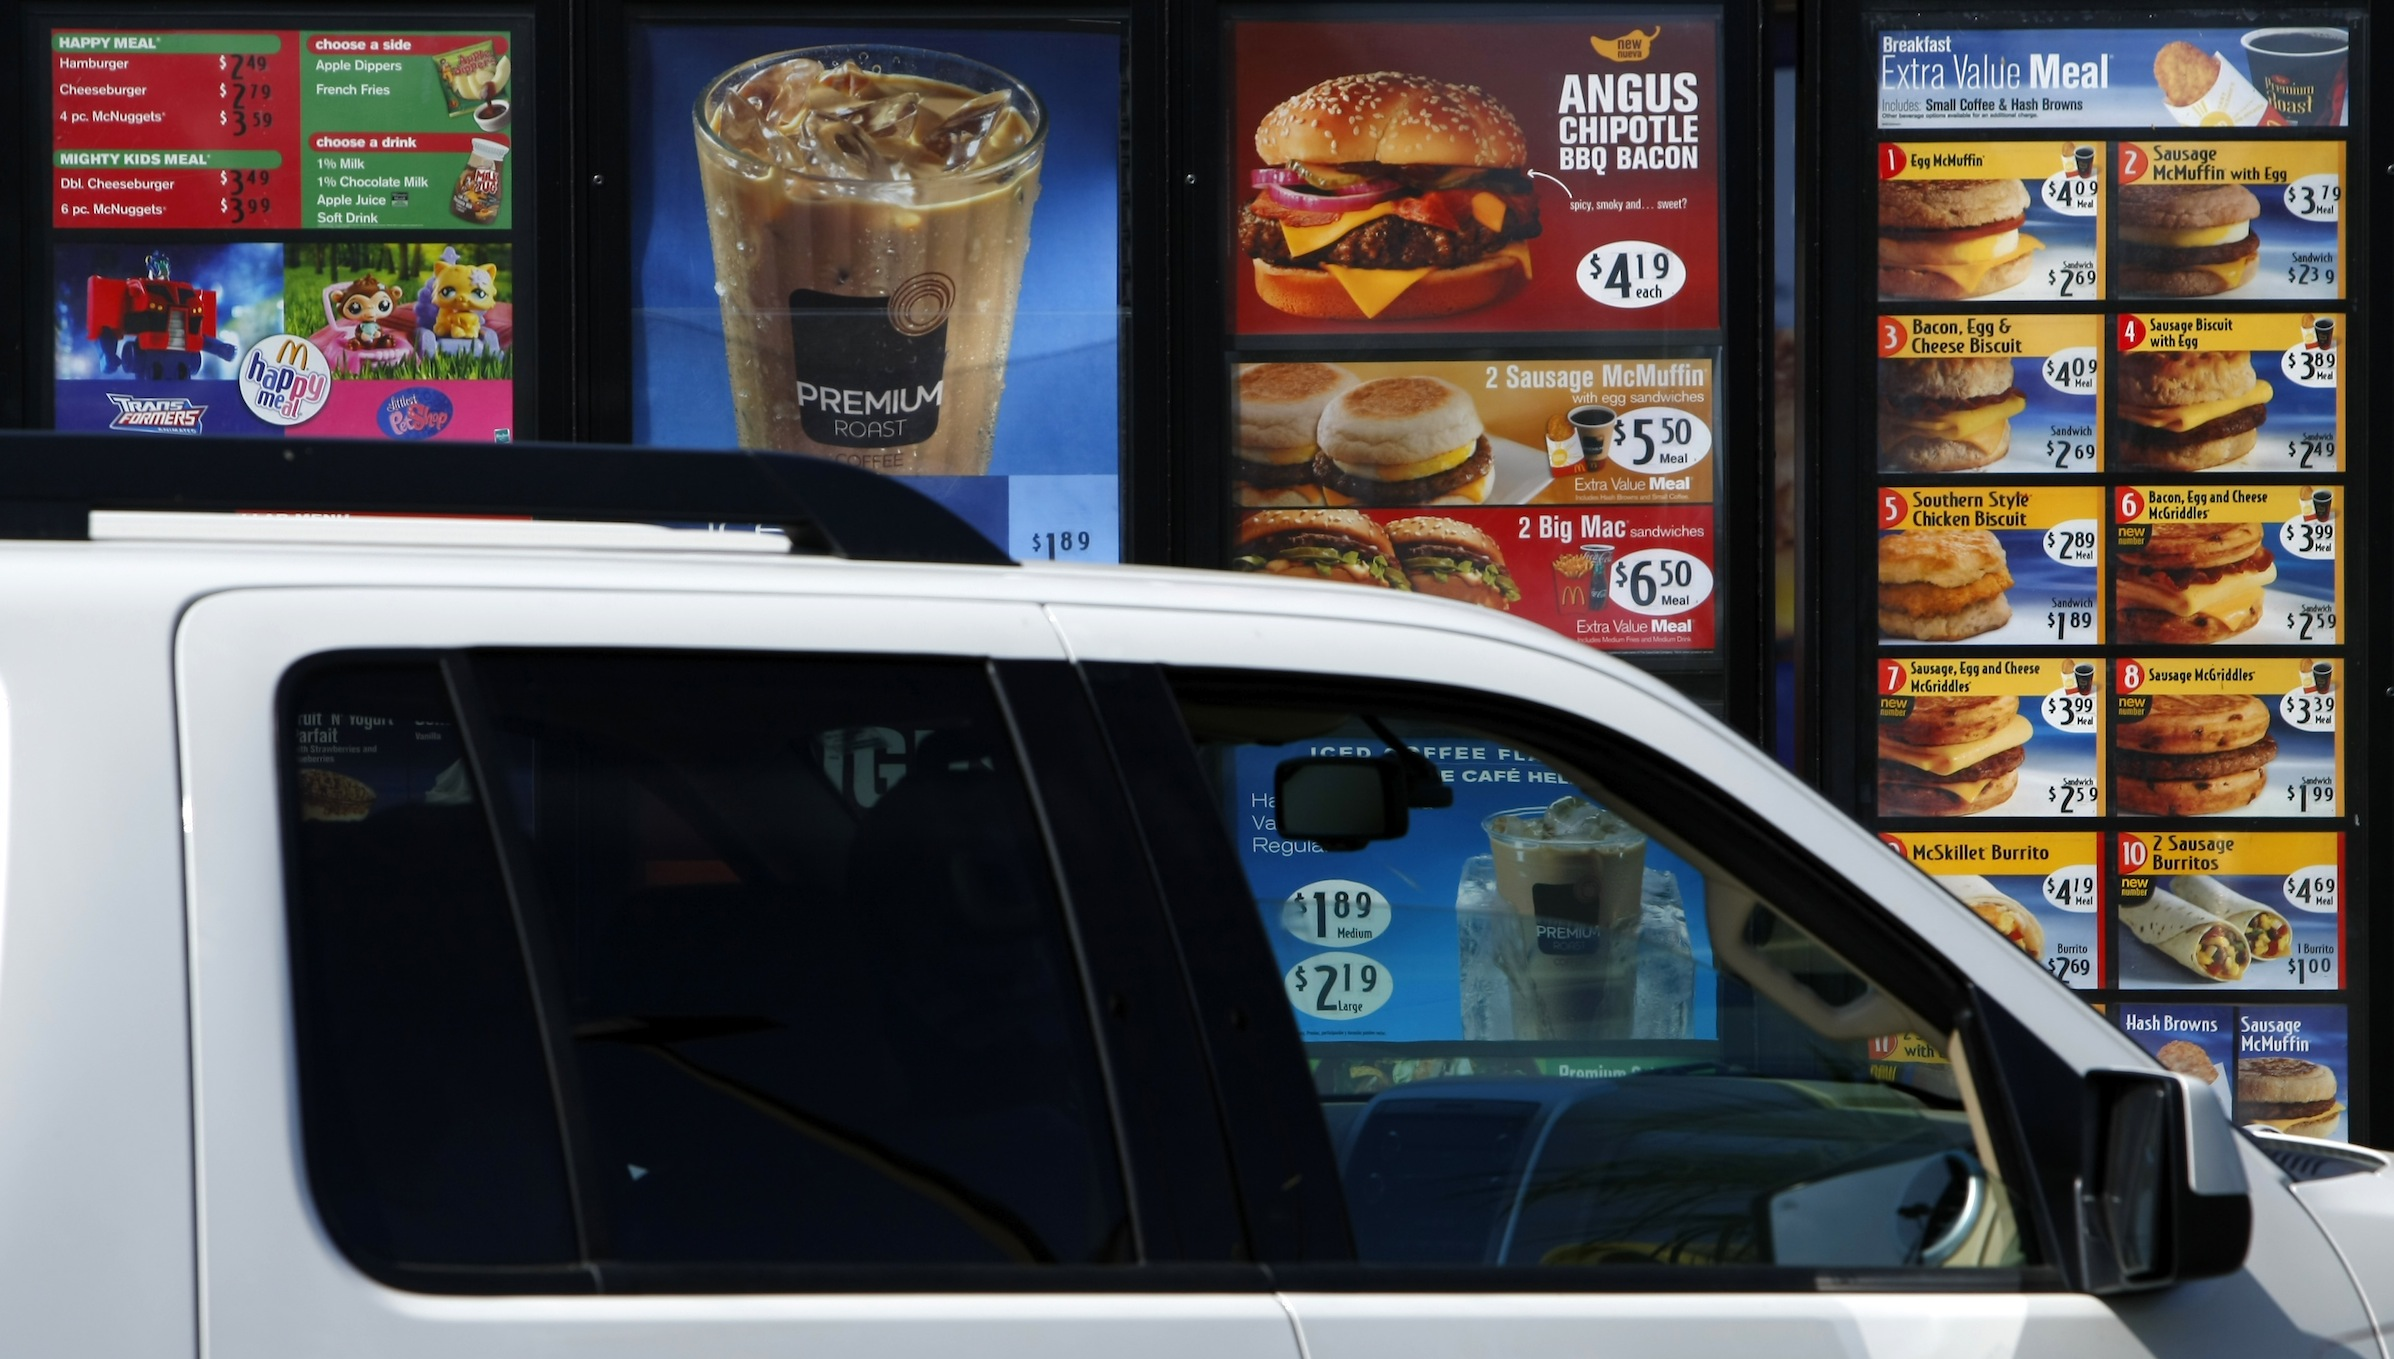 A customer orders food from a drive-thru menu is at a McDonald's restaurant in Encinitas, California July 21, 2008. McDonald's, the world's biggest restaurant chain, reports second-quarter earnings later this week. Investors will be looking for how the company is controlling rising commodity prices. REUTERS/Mike Blake (UNITED STATES) - RTR20EH3